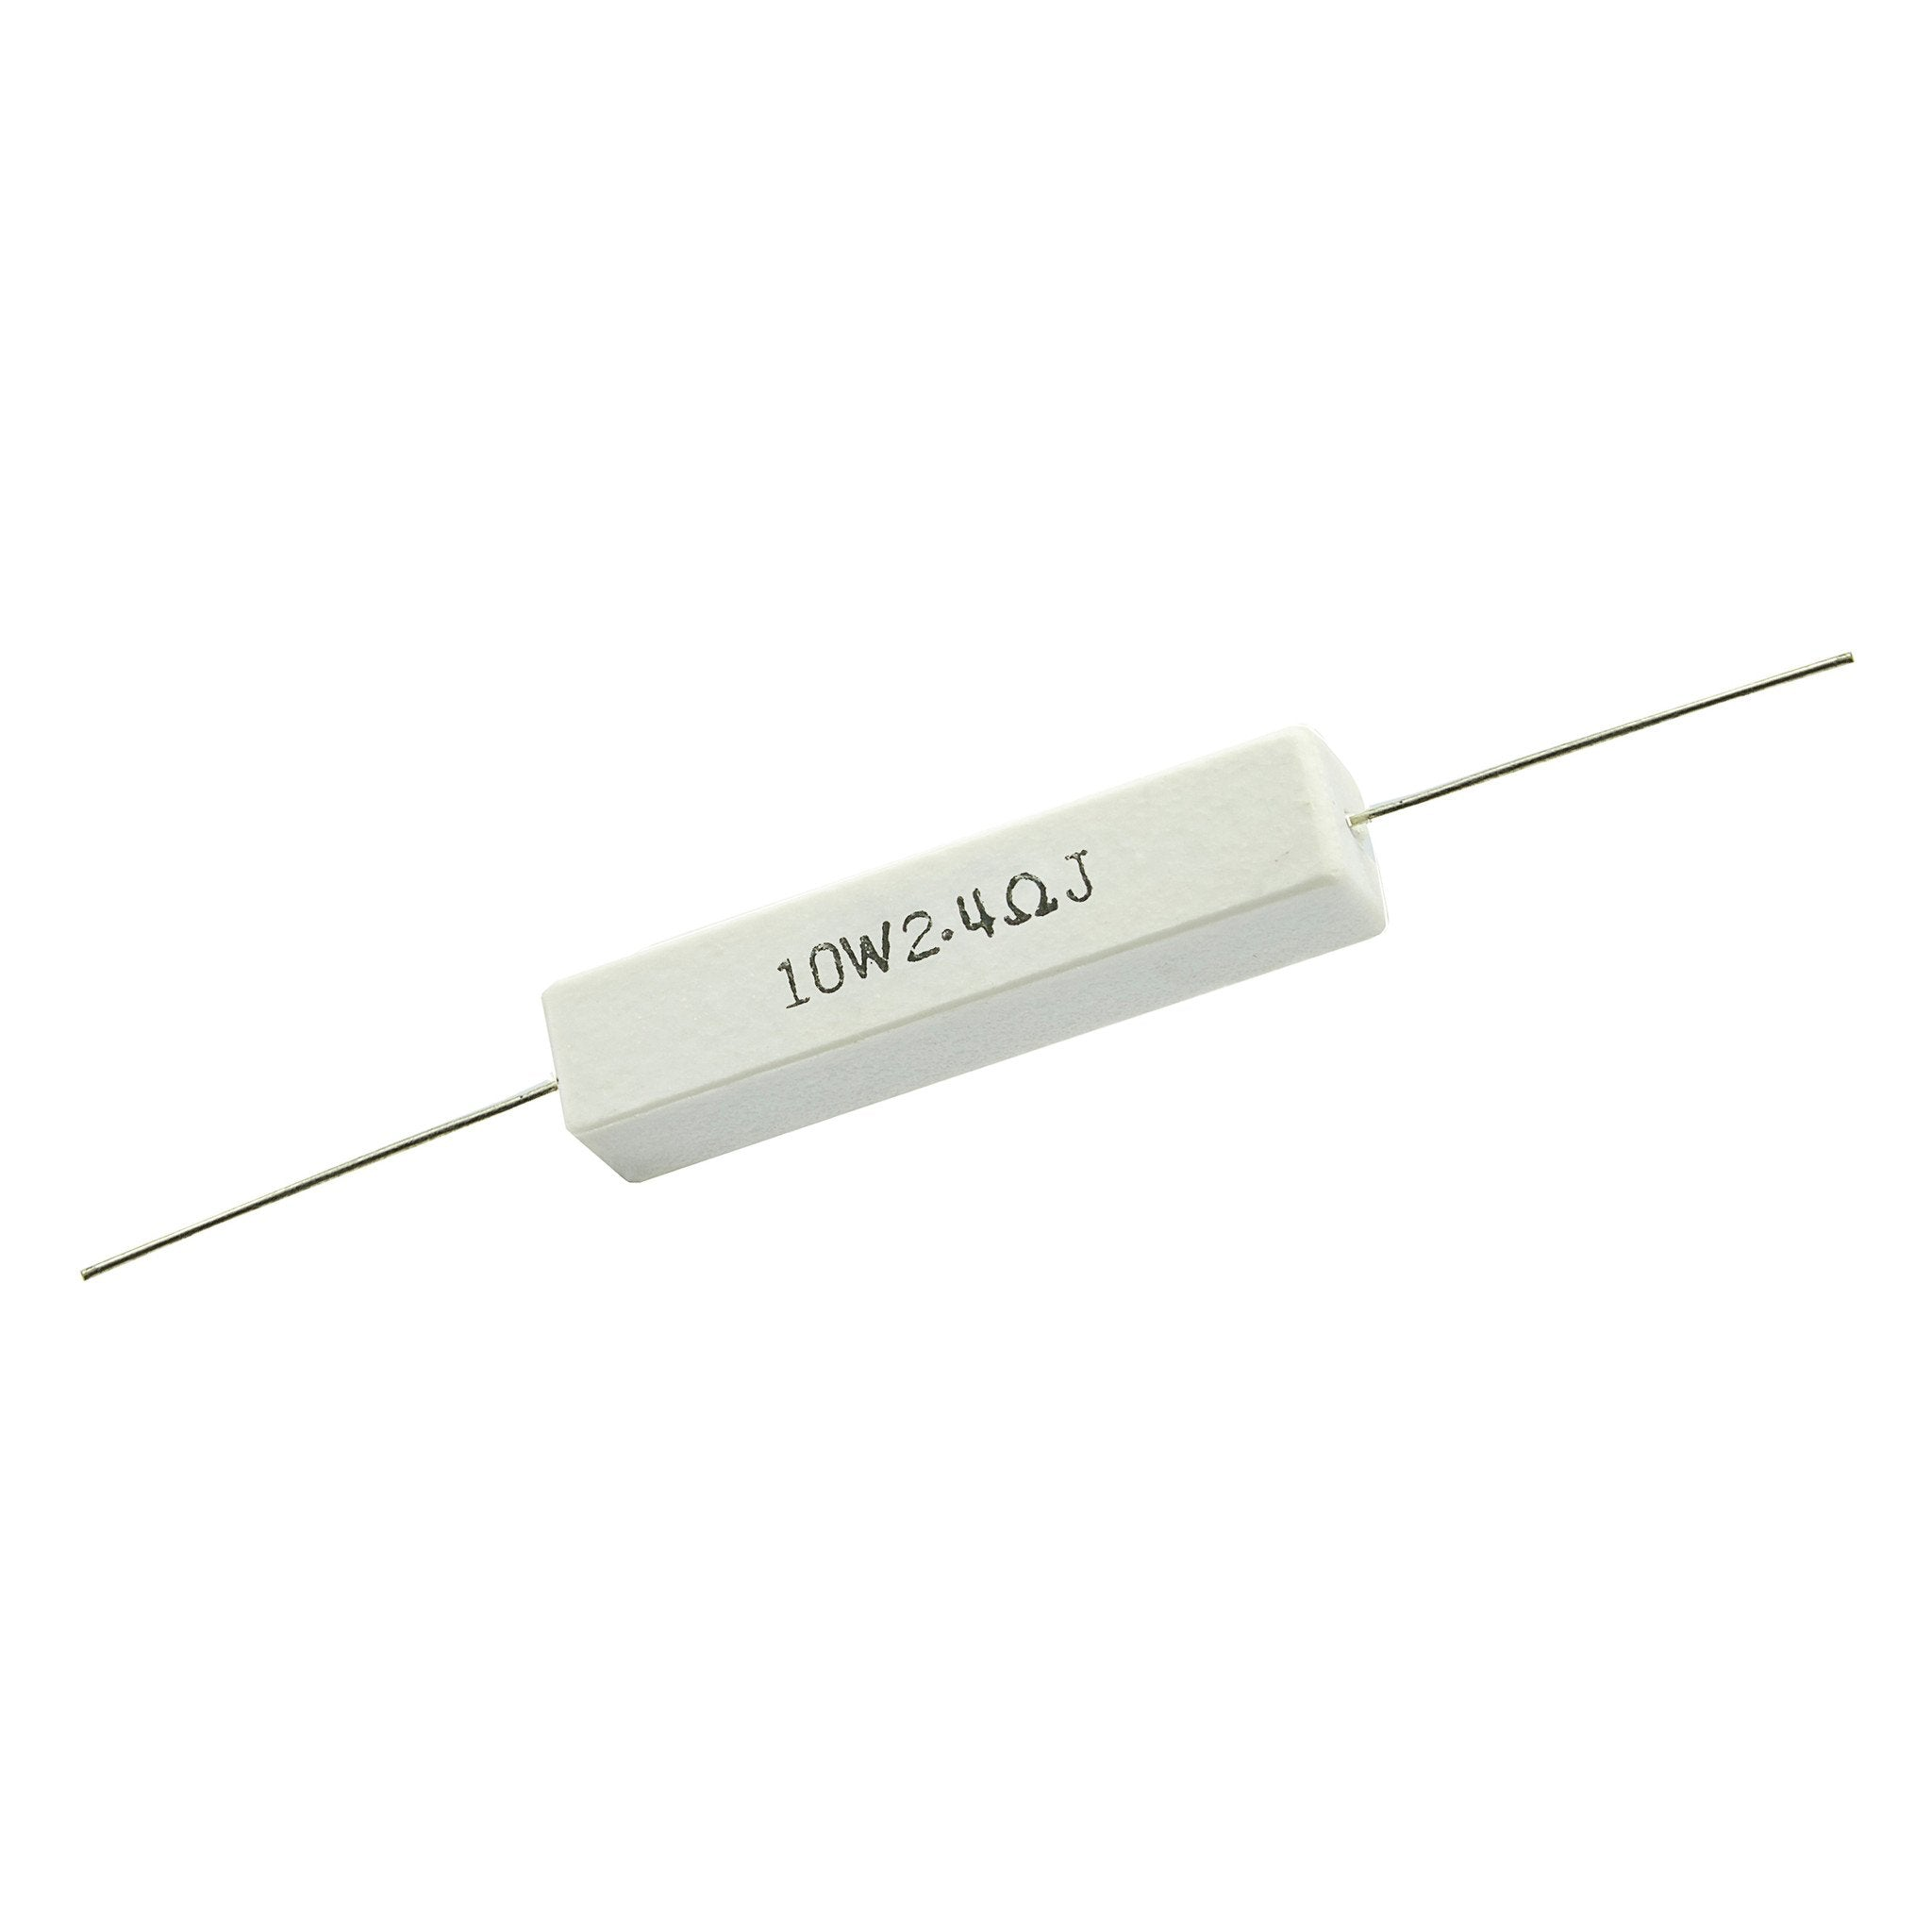 2.4 Ohm 10 Watt 5% Ceramic Wirewound Resistor - Willys-Hifi Ltd